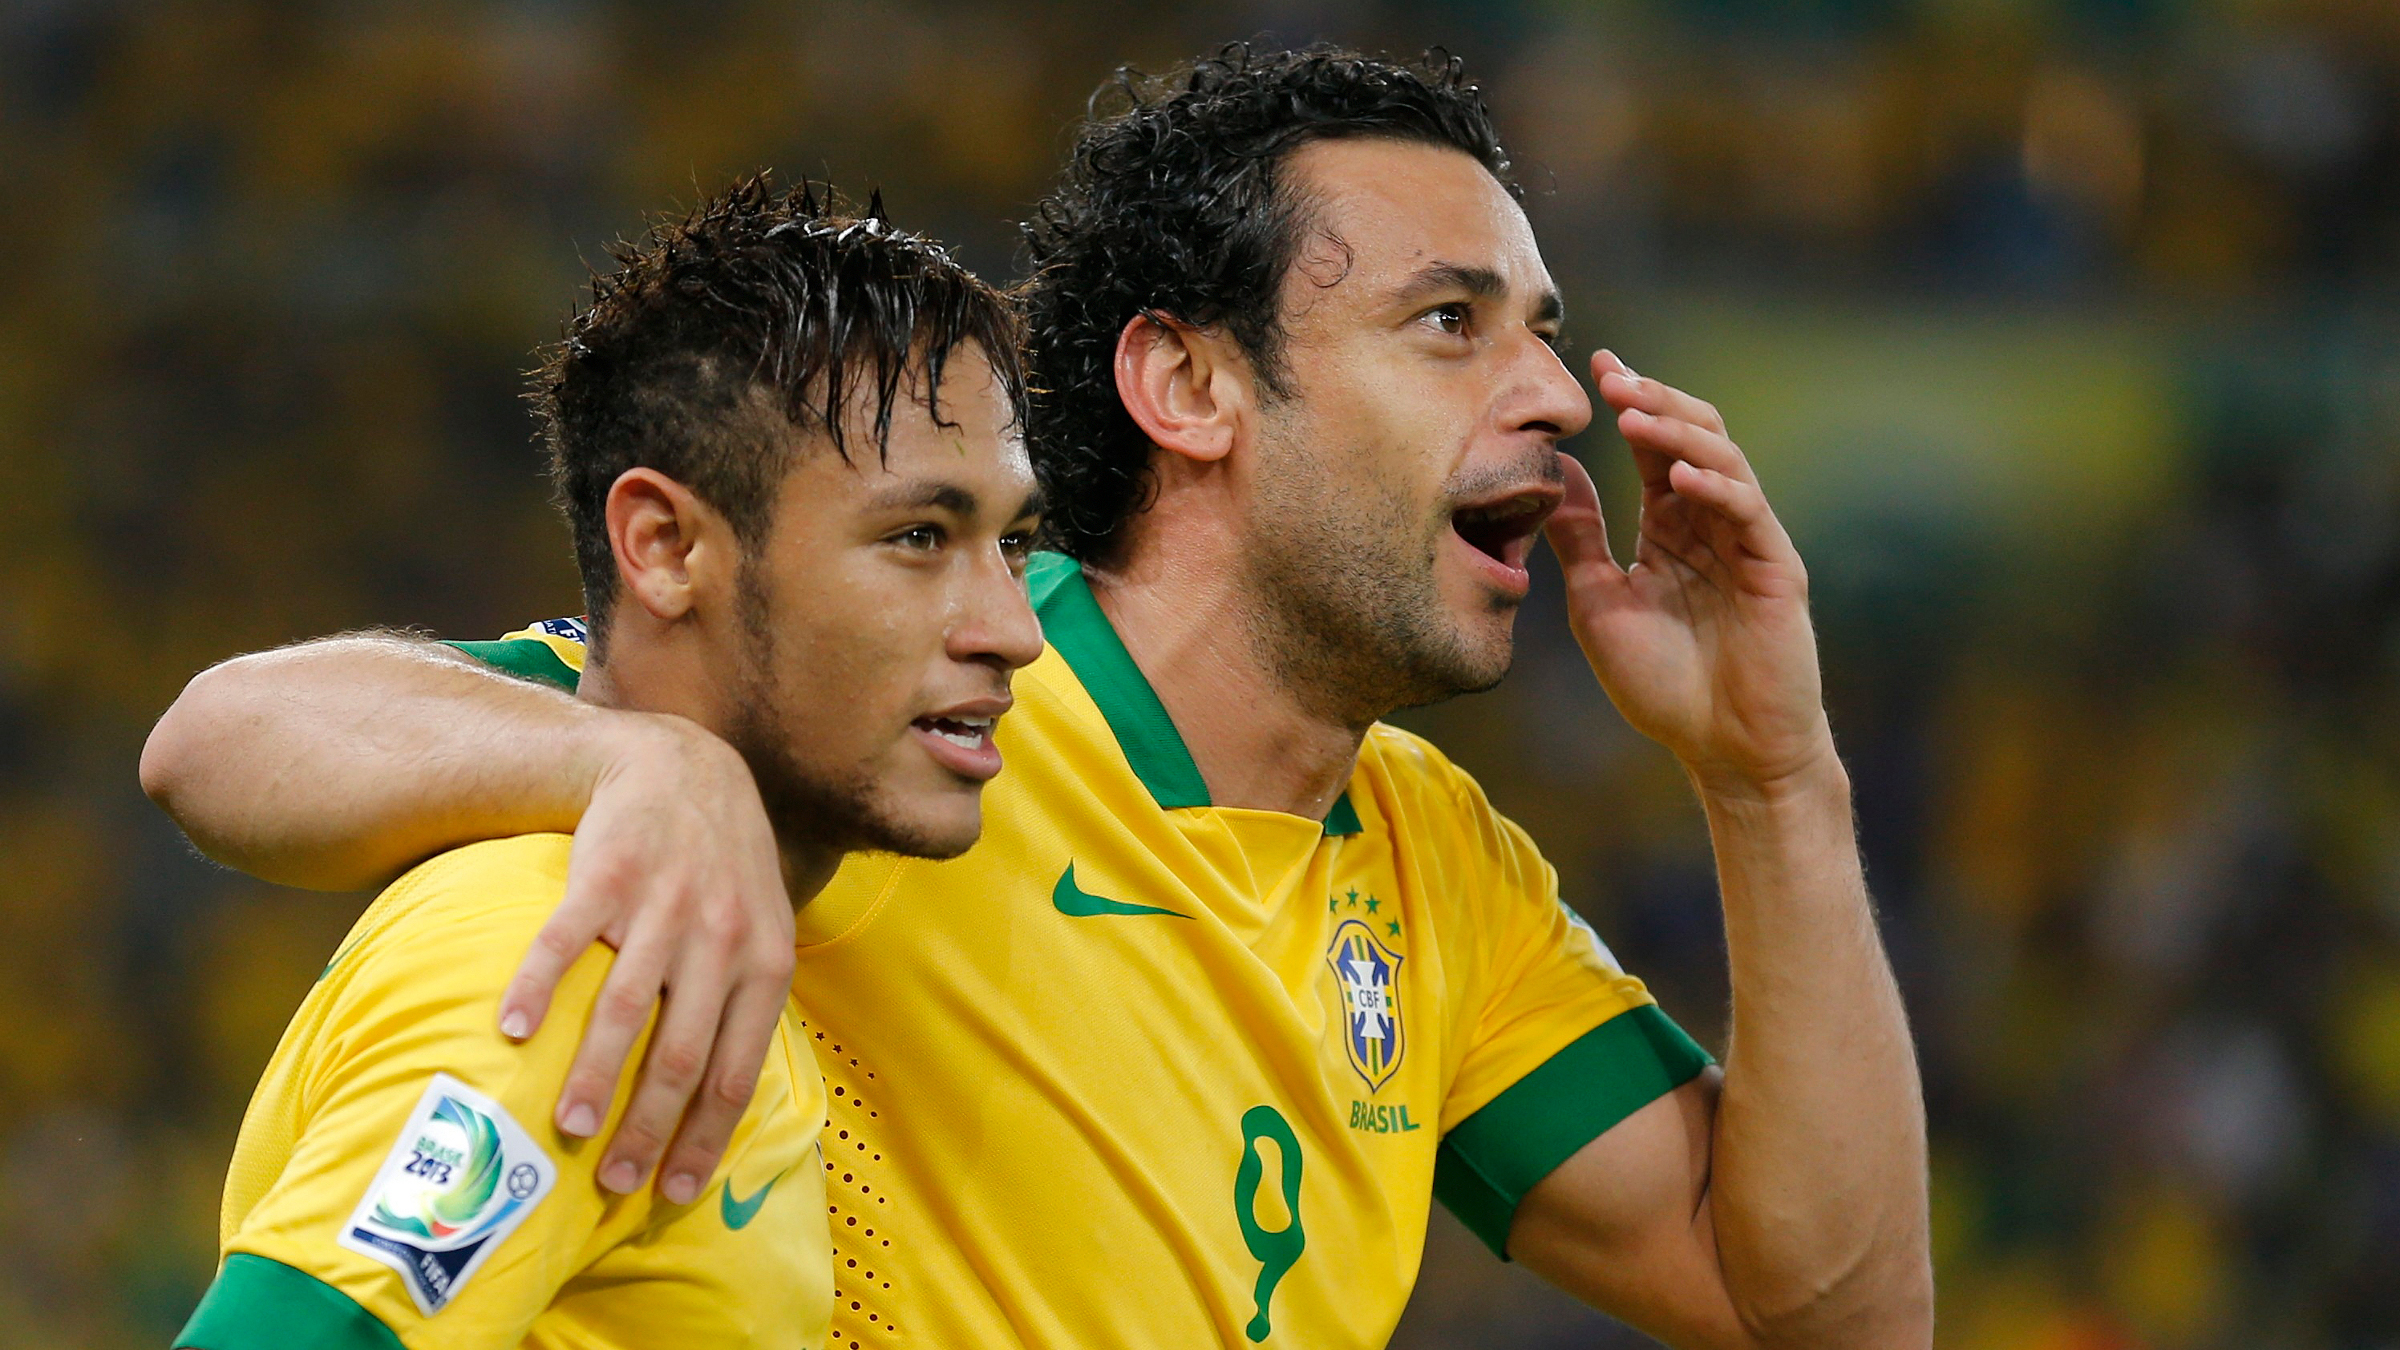 Brazil's Fred (R) celebrates with teammate Neymar after scoring a second half goal against Spain during the Confederations Cup final soccer match at the Estadio Maracana in Rio de Janeiro June 30, 2013.